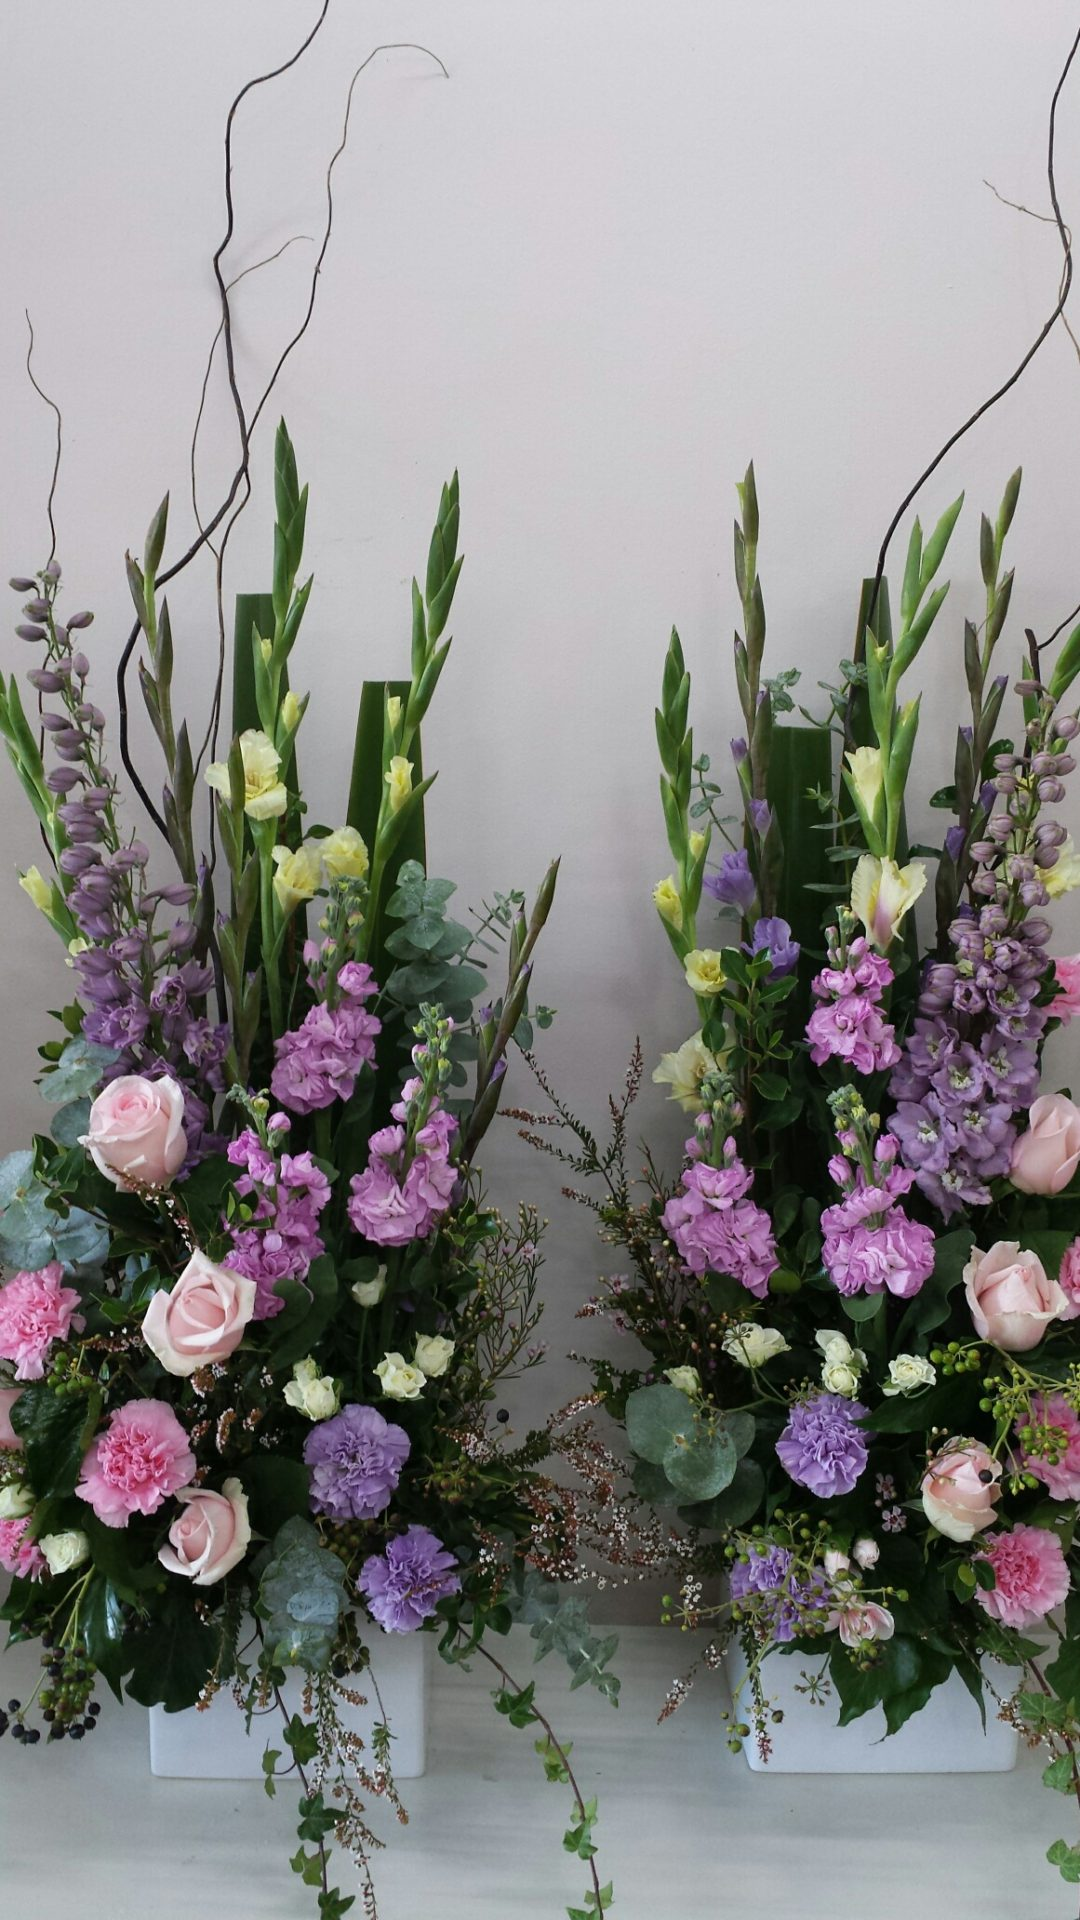 Matching pedestal arrangements in soft pink and lavender